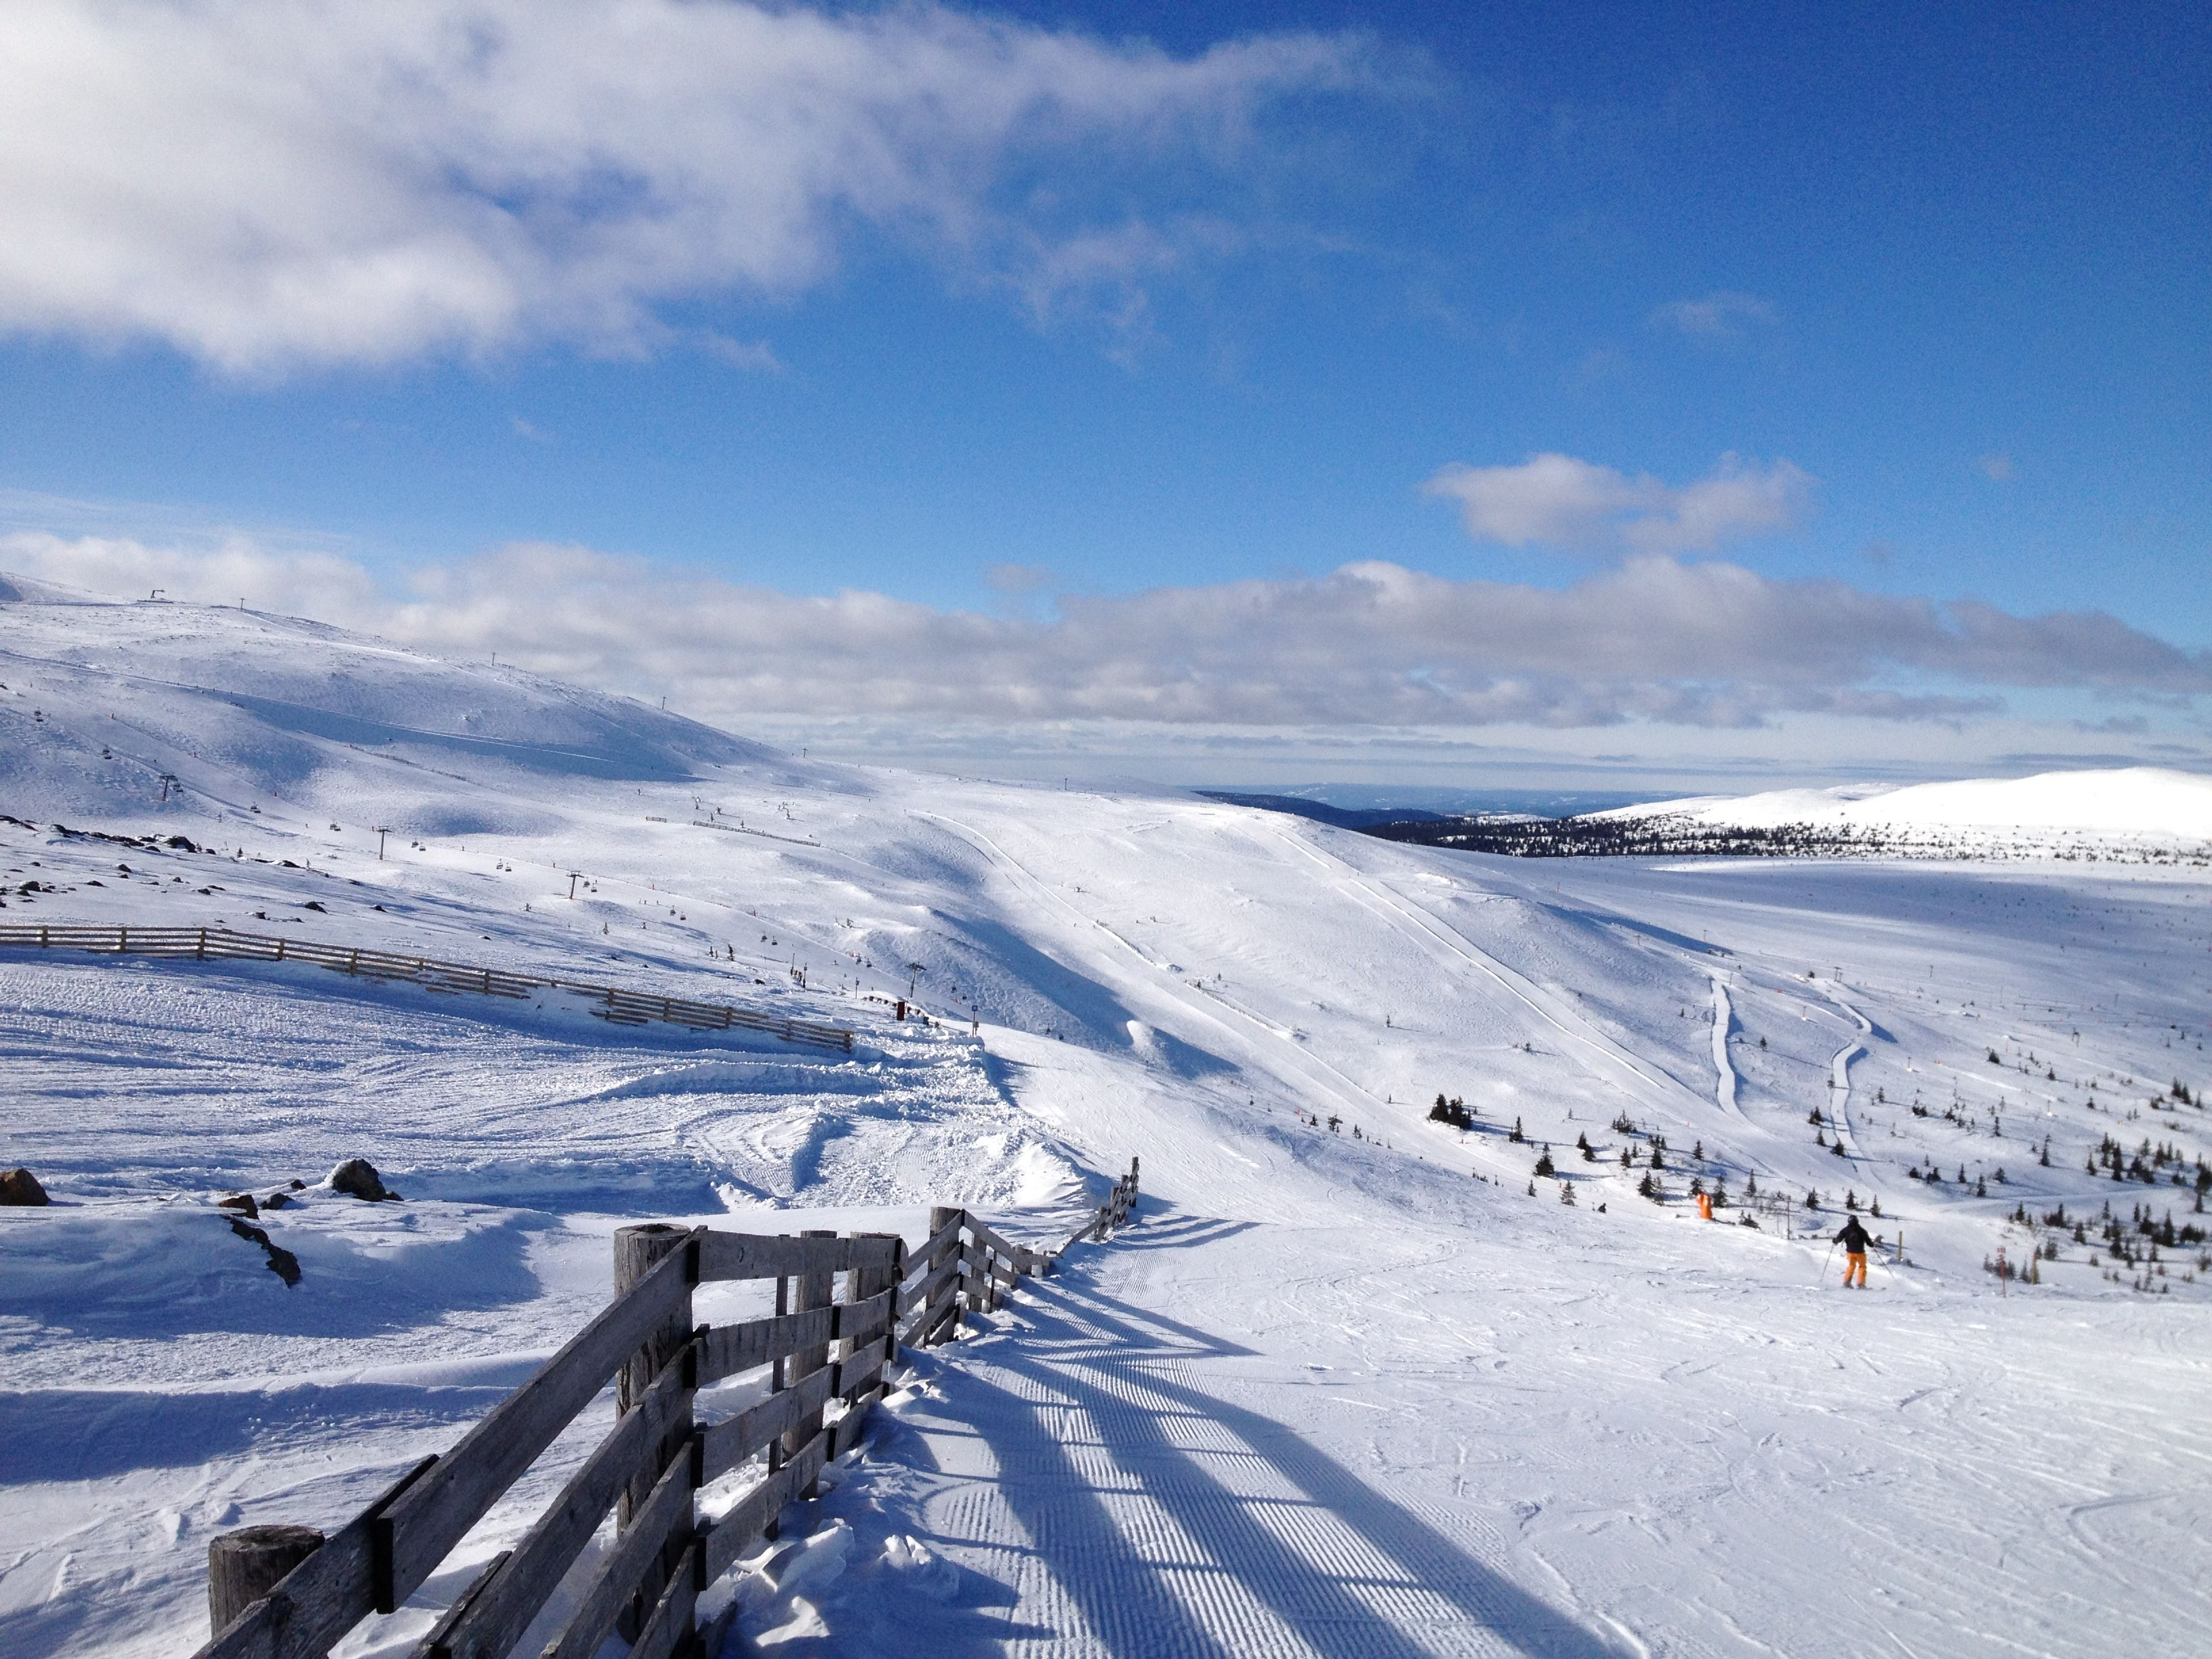 trysil is norway's largest ski resort with 66 slopes and 31 lifts